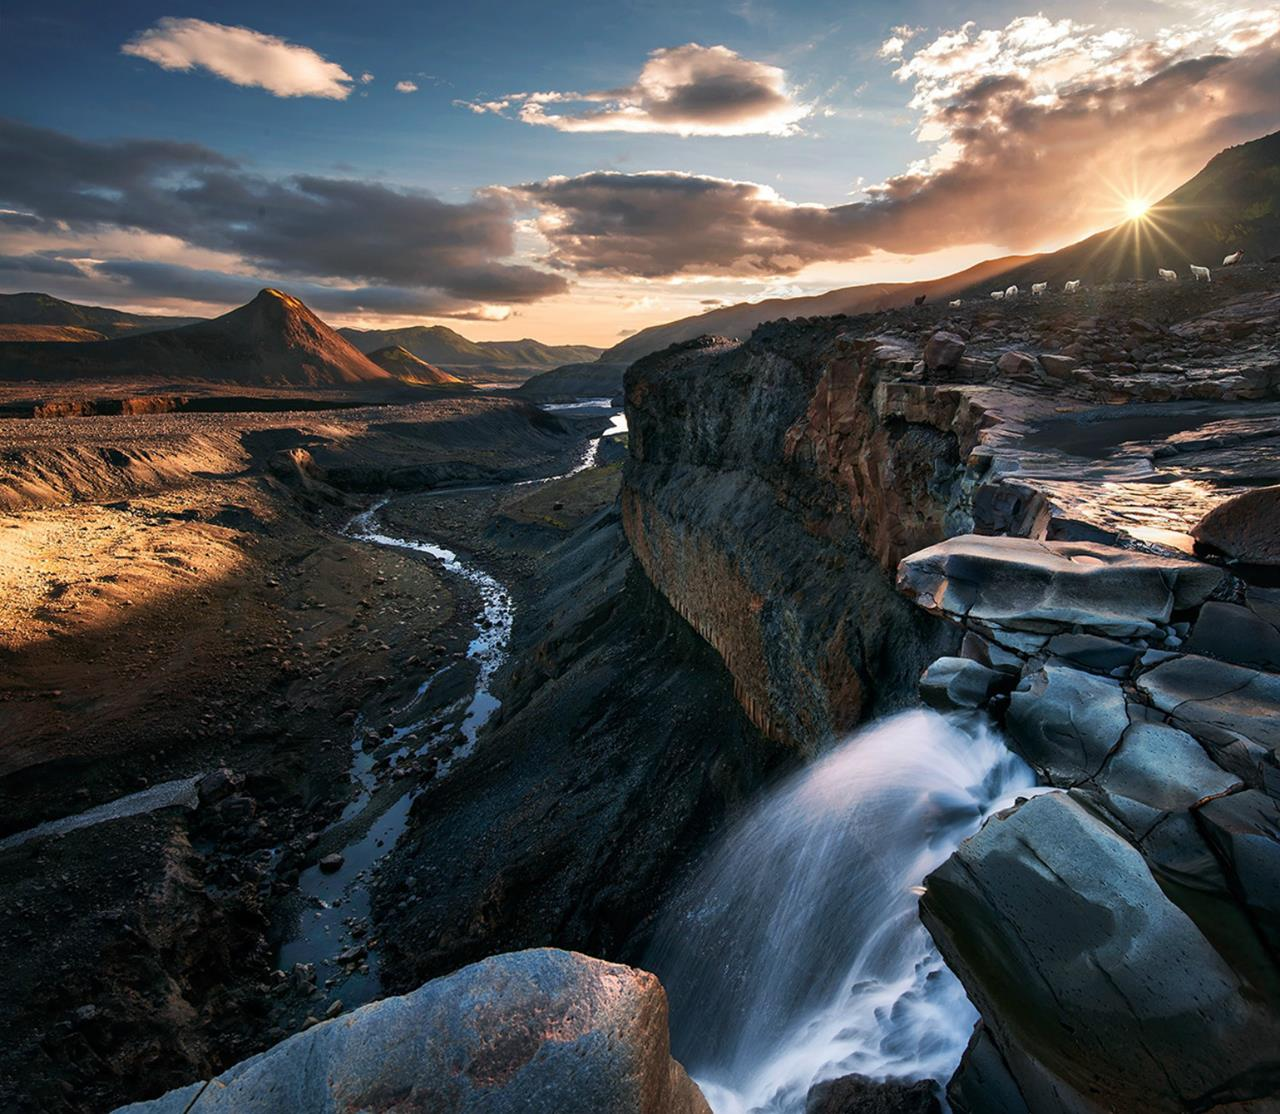 Awesome Nature Photography By With Mex Rive